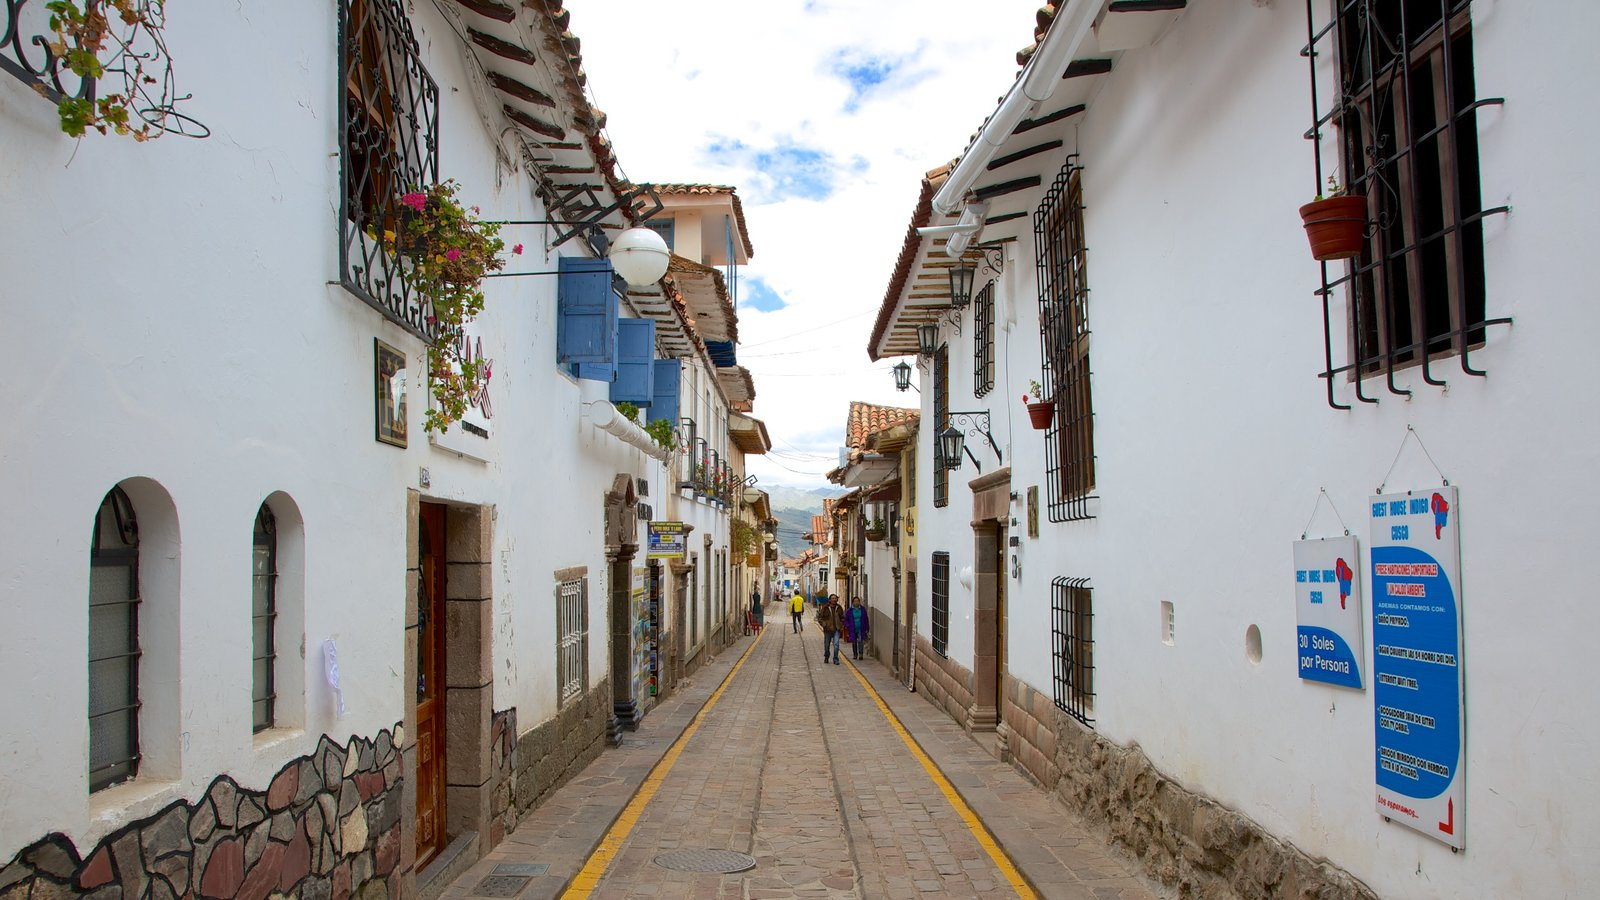 Cusco showing street scenes